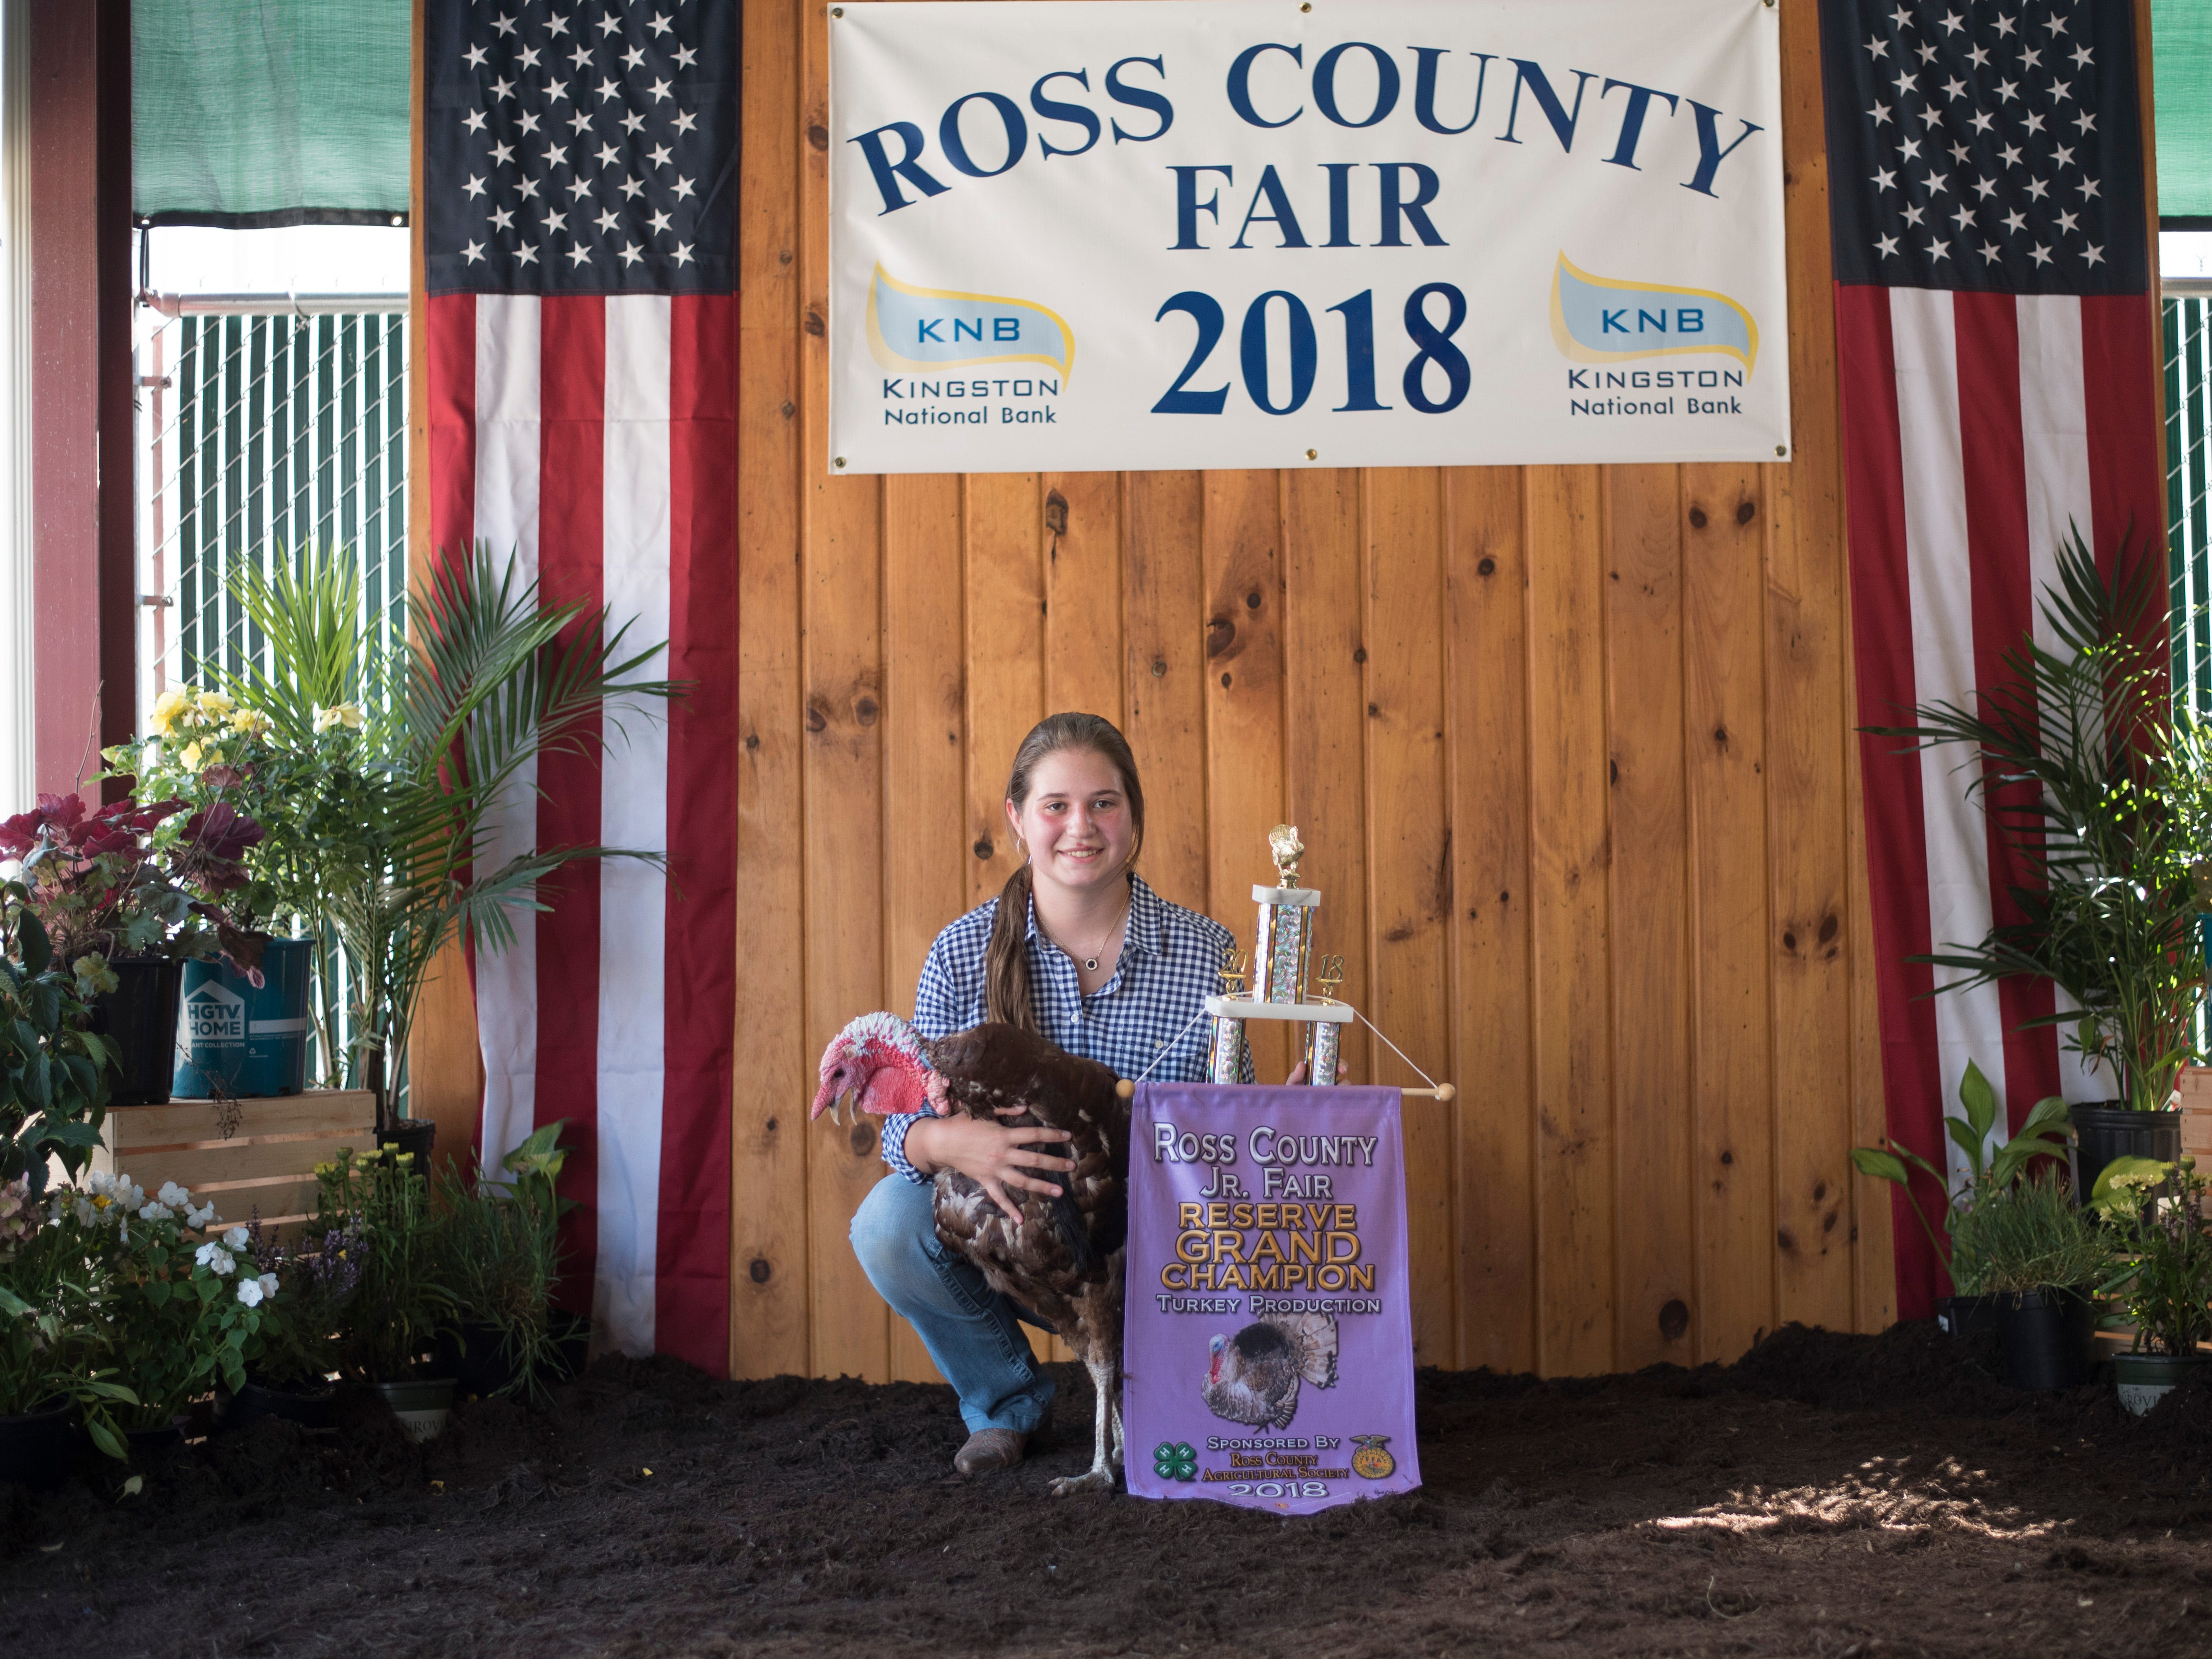 Highlights and portraits of the of the 2018 Jr. Fair Poultry Production and Fancy Poultry judging and showmanship contest. Emily Willis, 17, poses after winning Reserve Grand Champion with her turkey at the 2018 Ross County Fair on Monday, August 6.